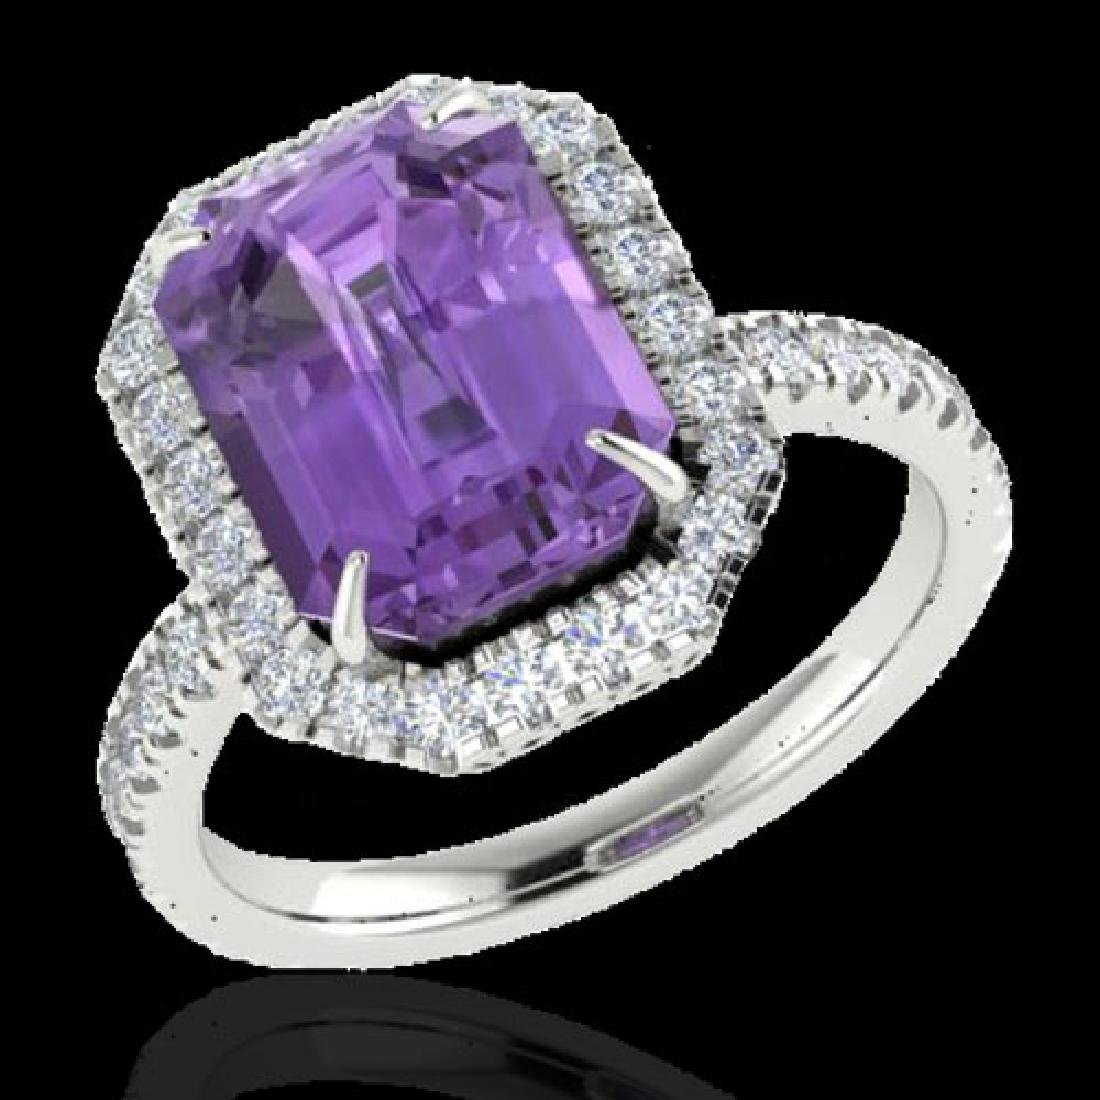 5.03 CTW Amethyst And Micro Pave VS/SI Diamond Halo